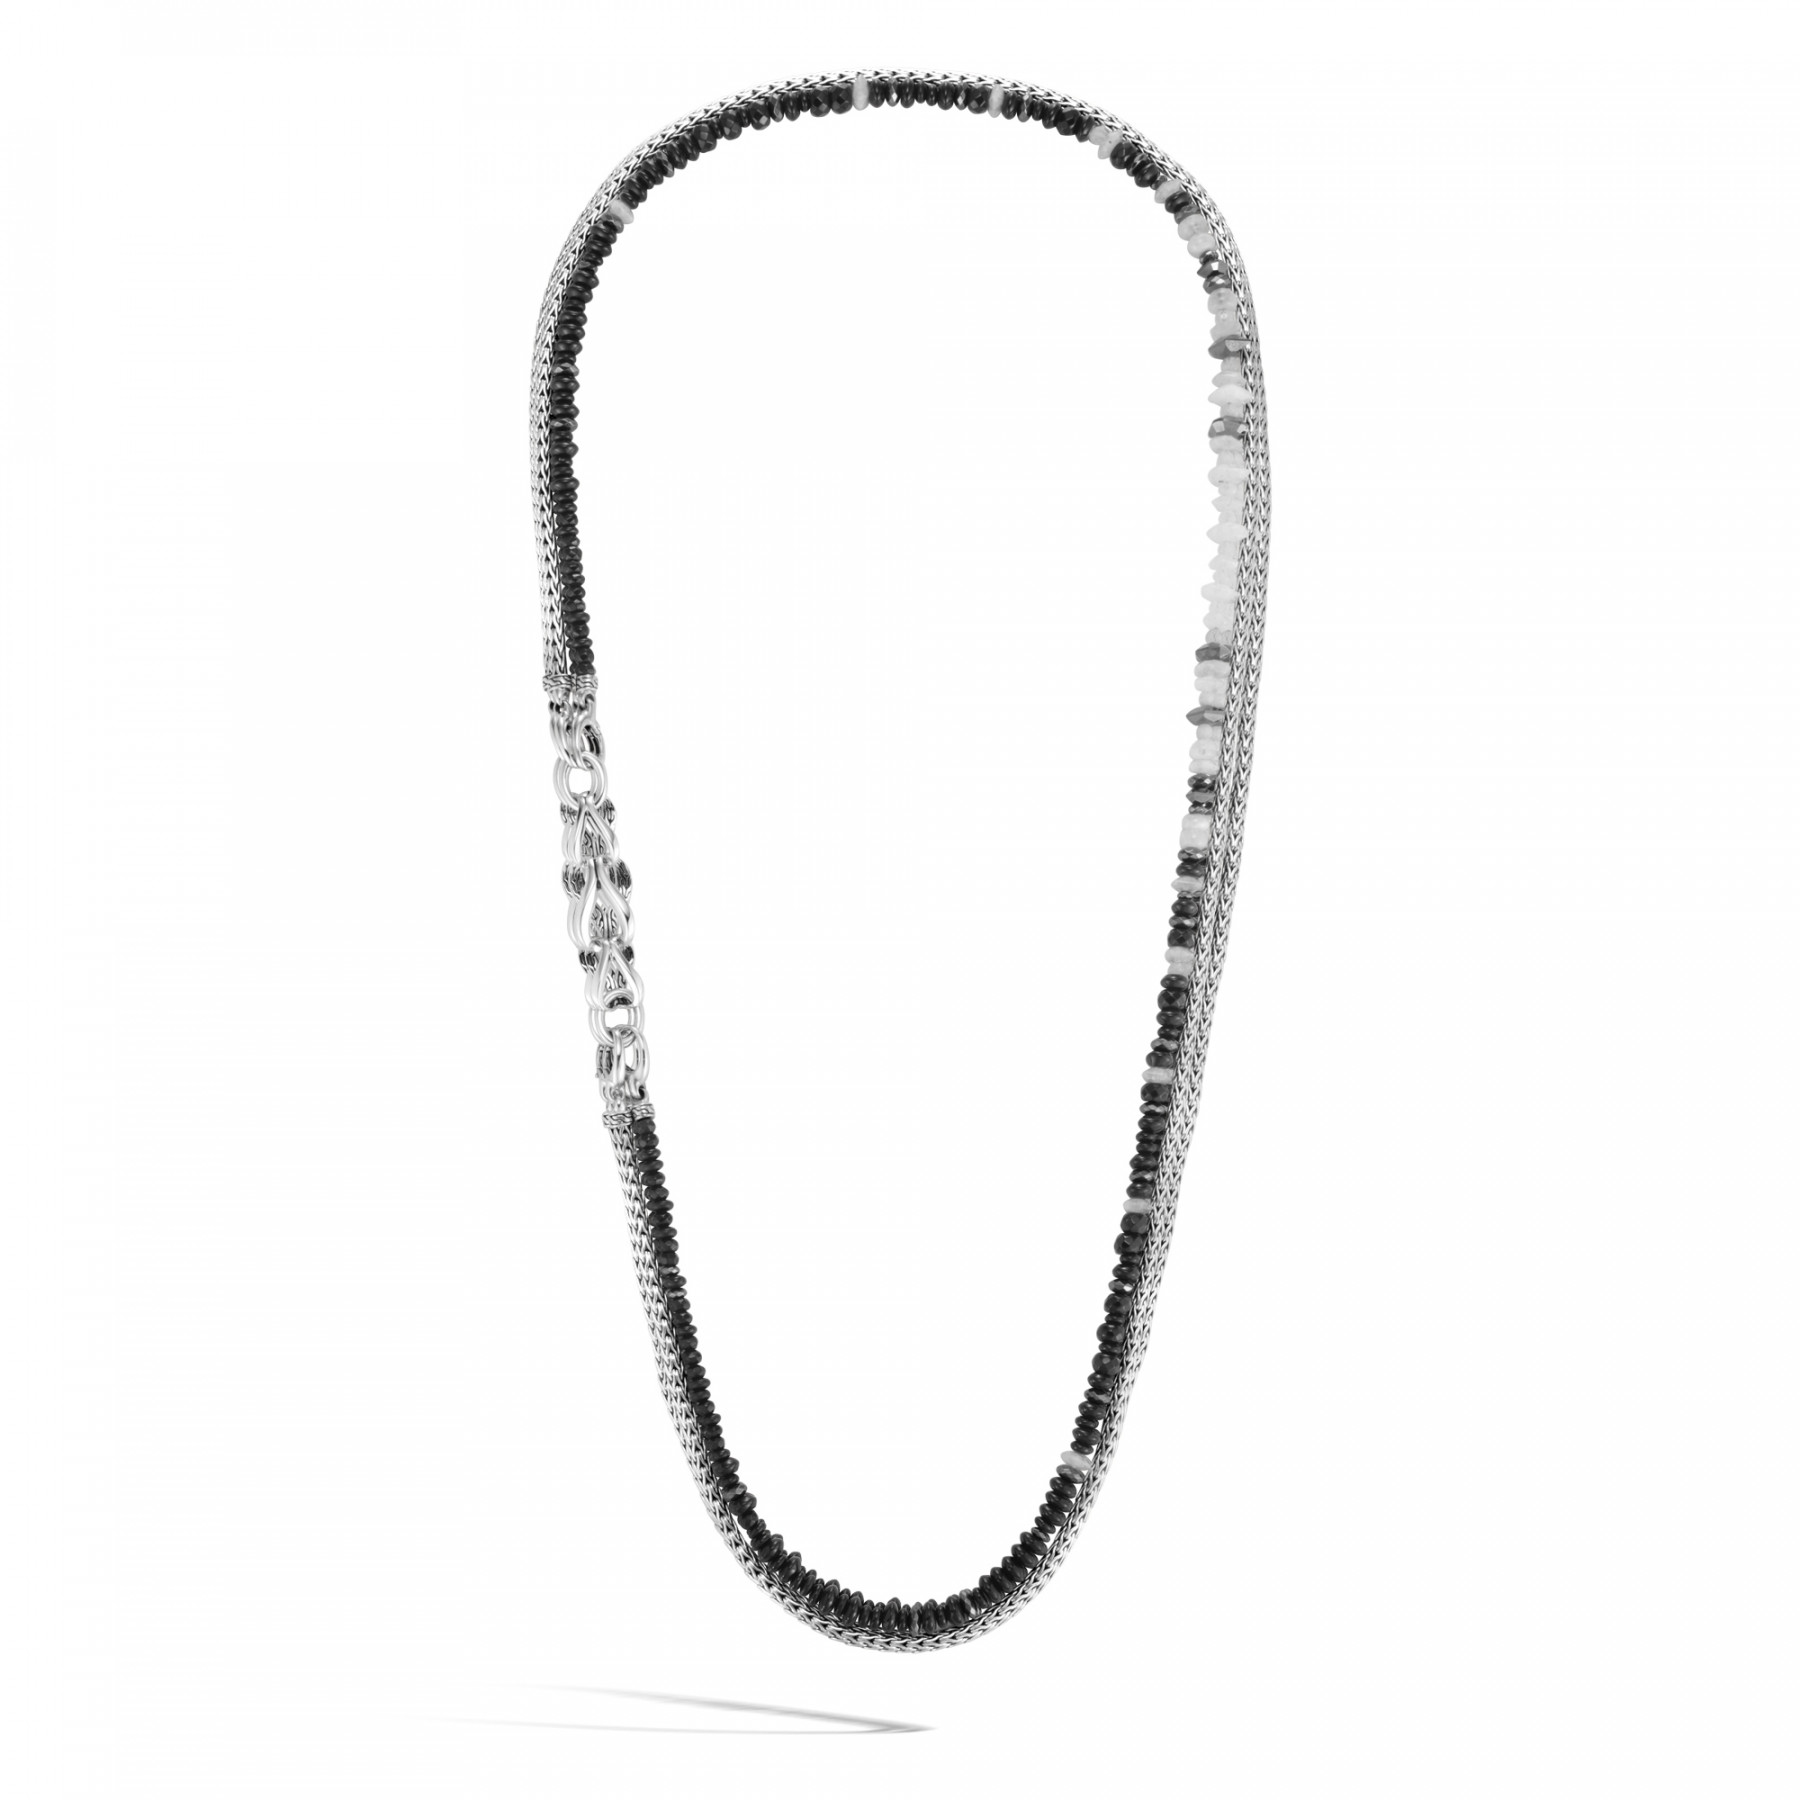 John Hardy Asli Classic Chain Hematite Long Convertible Necklace